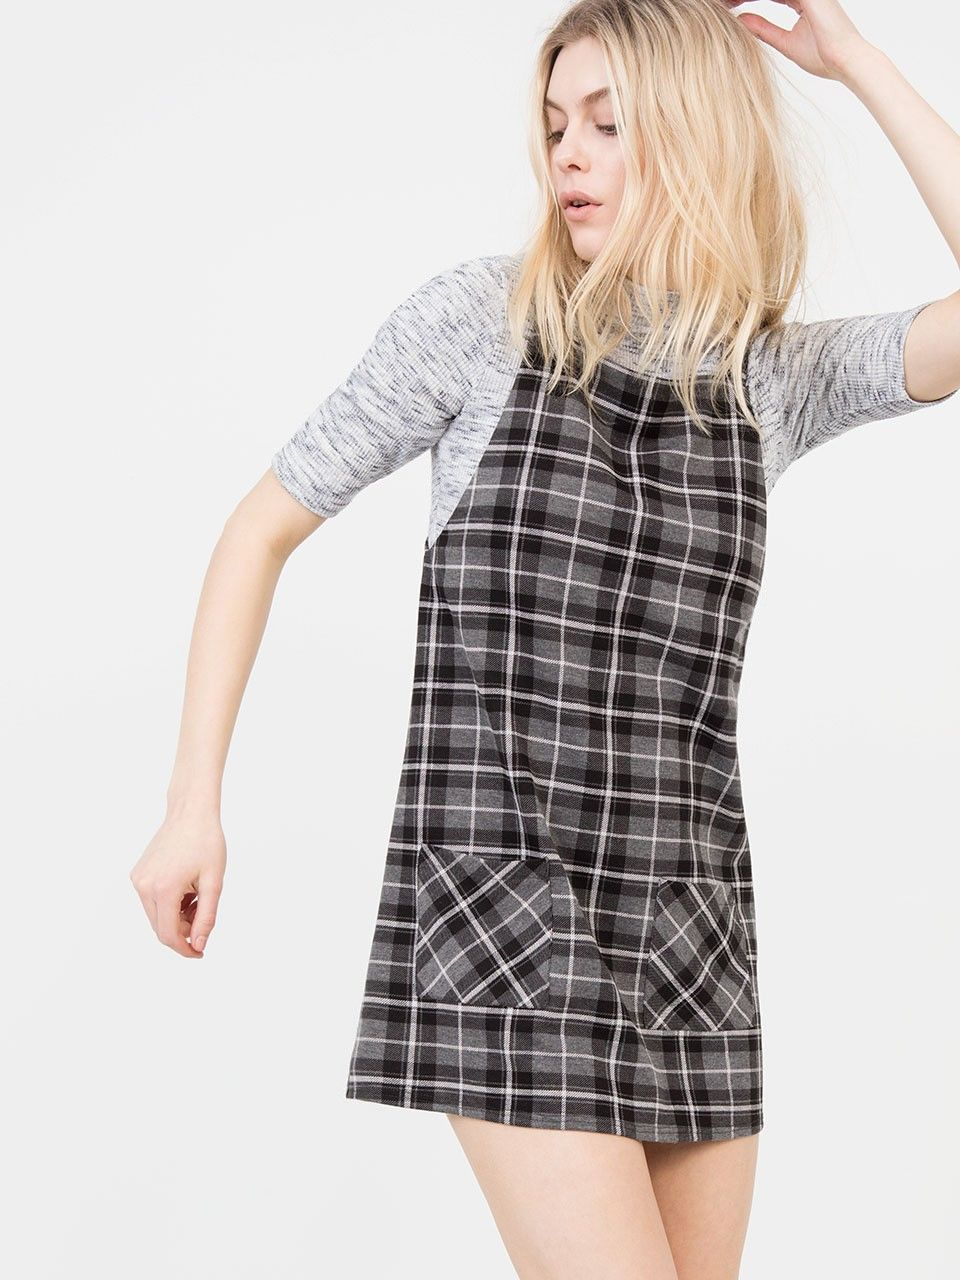 GREY PATTERN CHECK PINAFORE DRESS